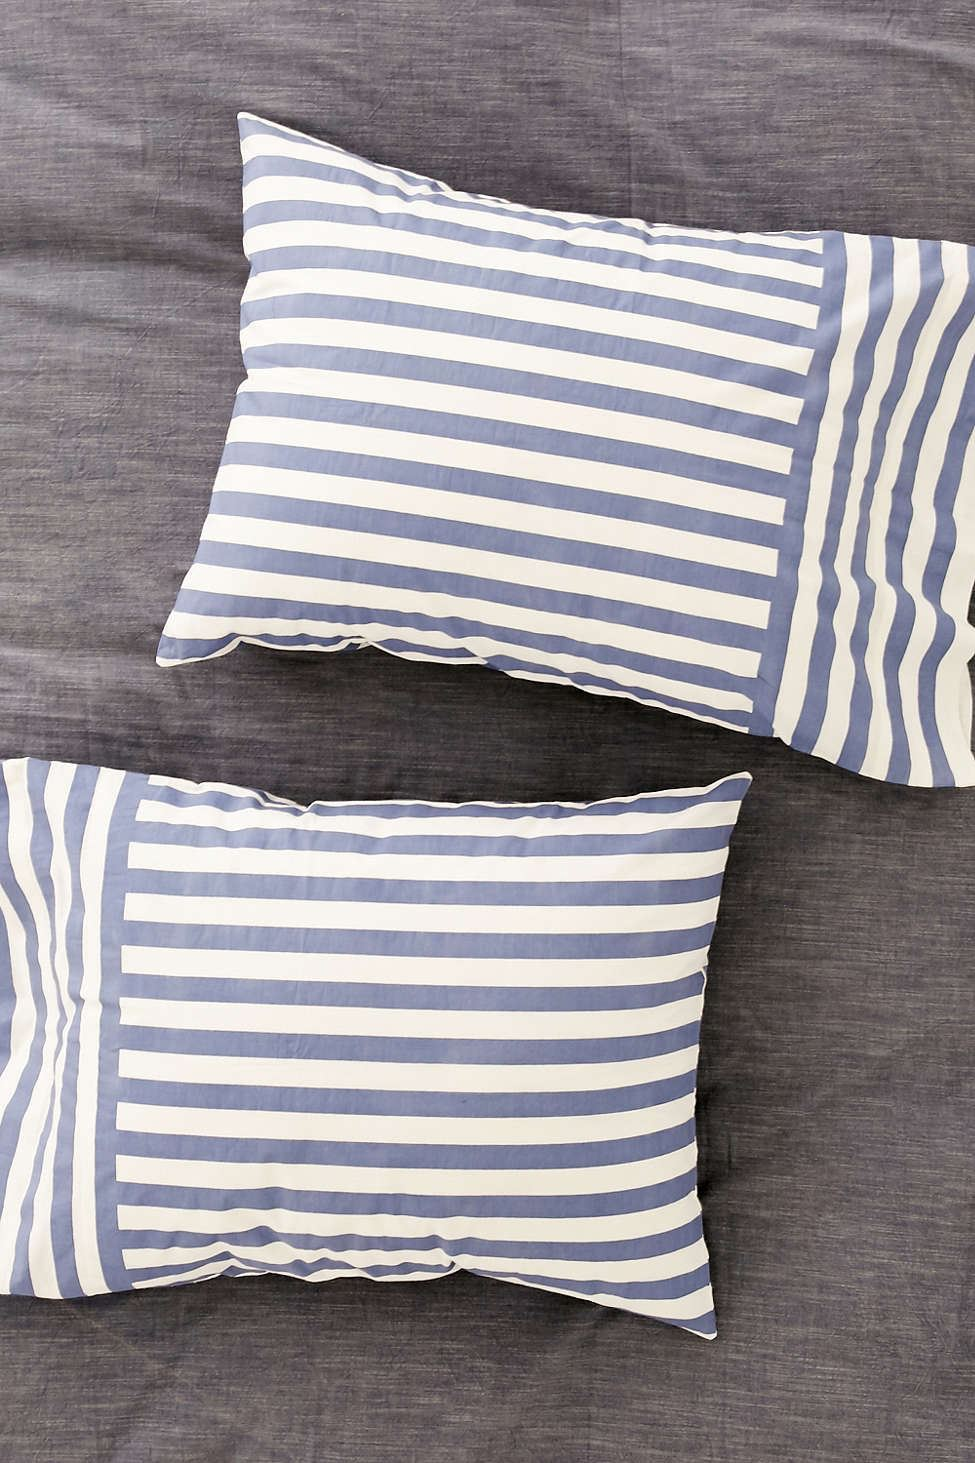 Striped-pillowcases-from-Urban-Outfitters